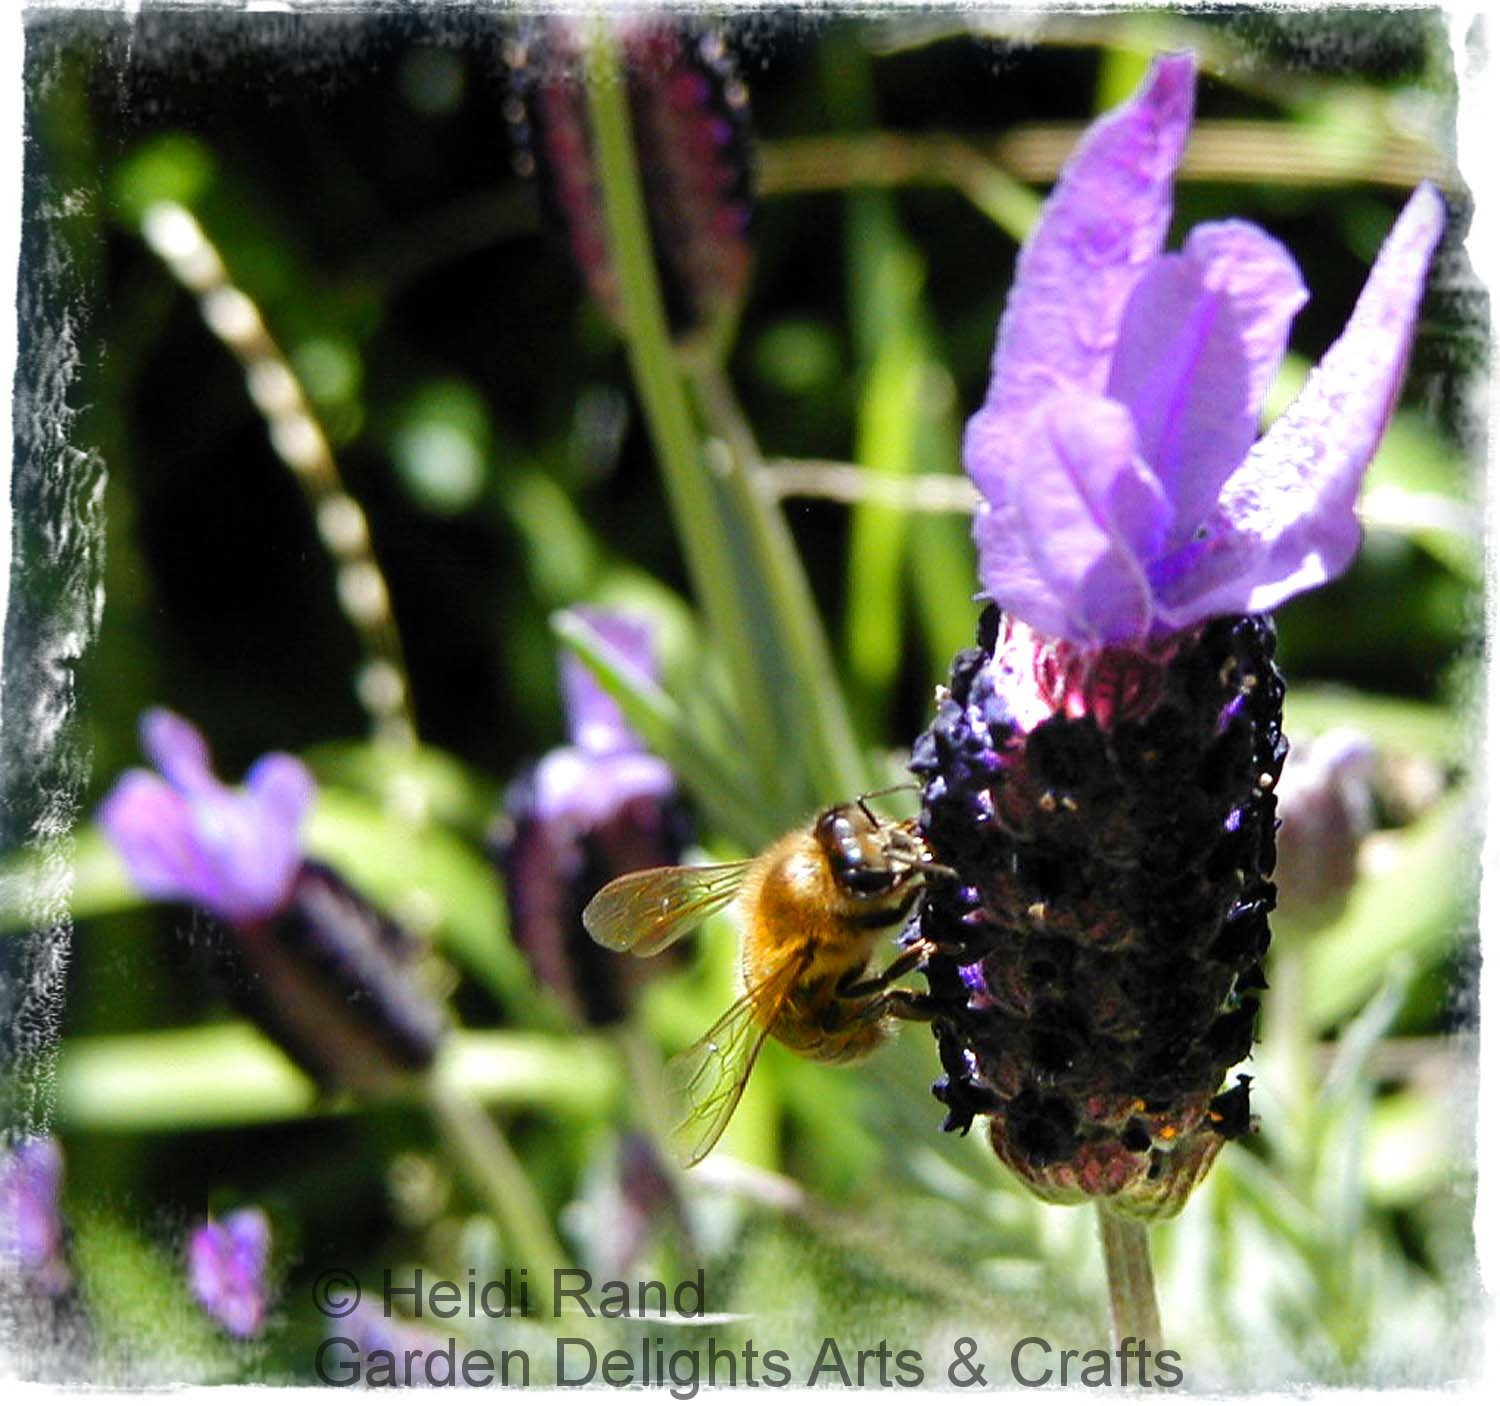 Honeybee on Spanish lavender